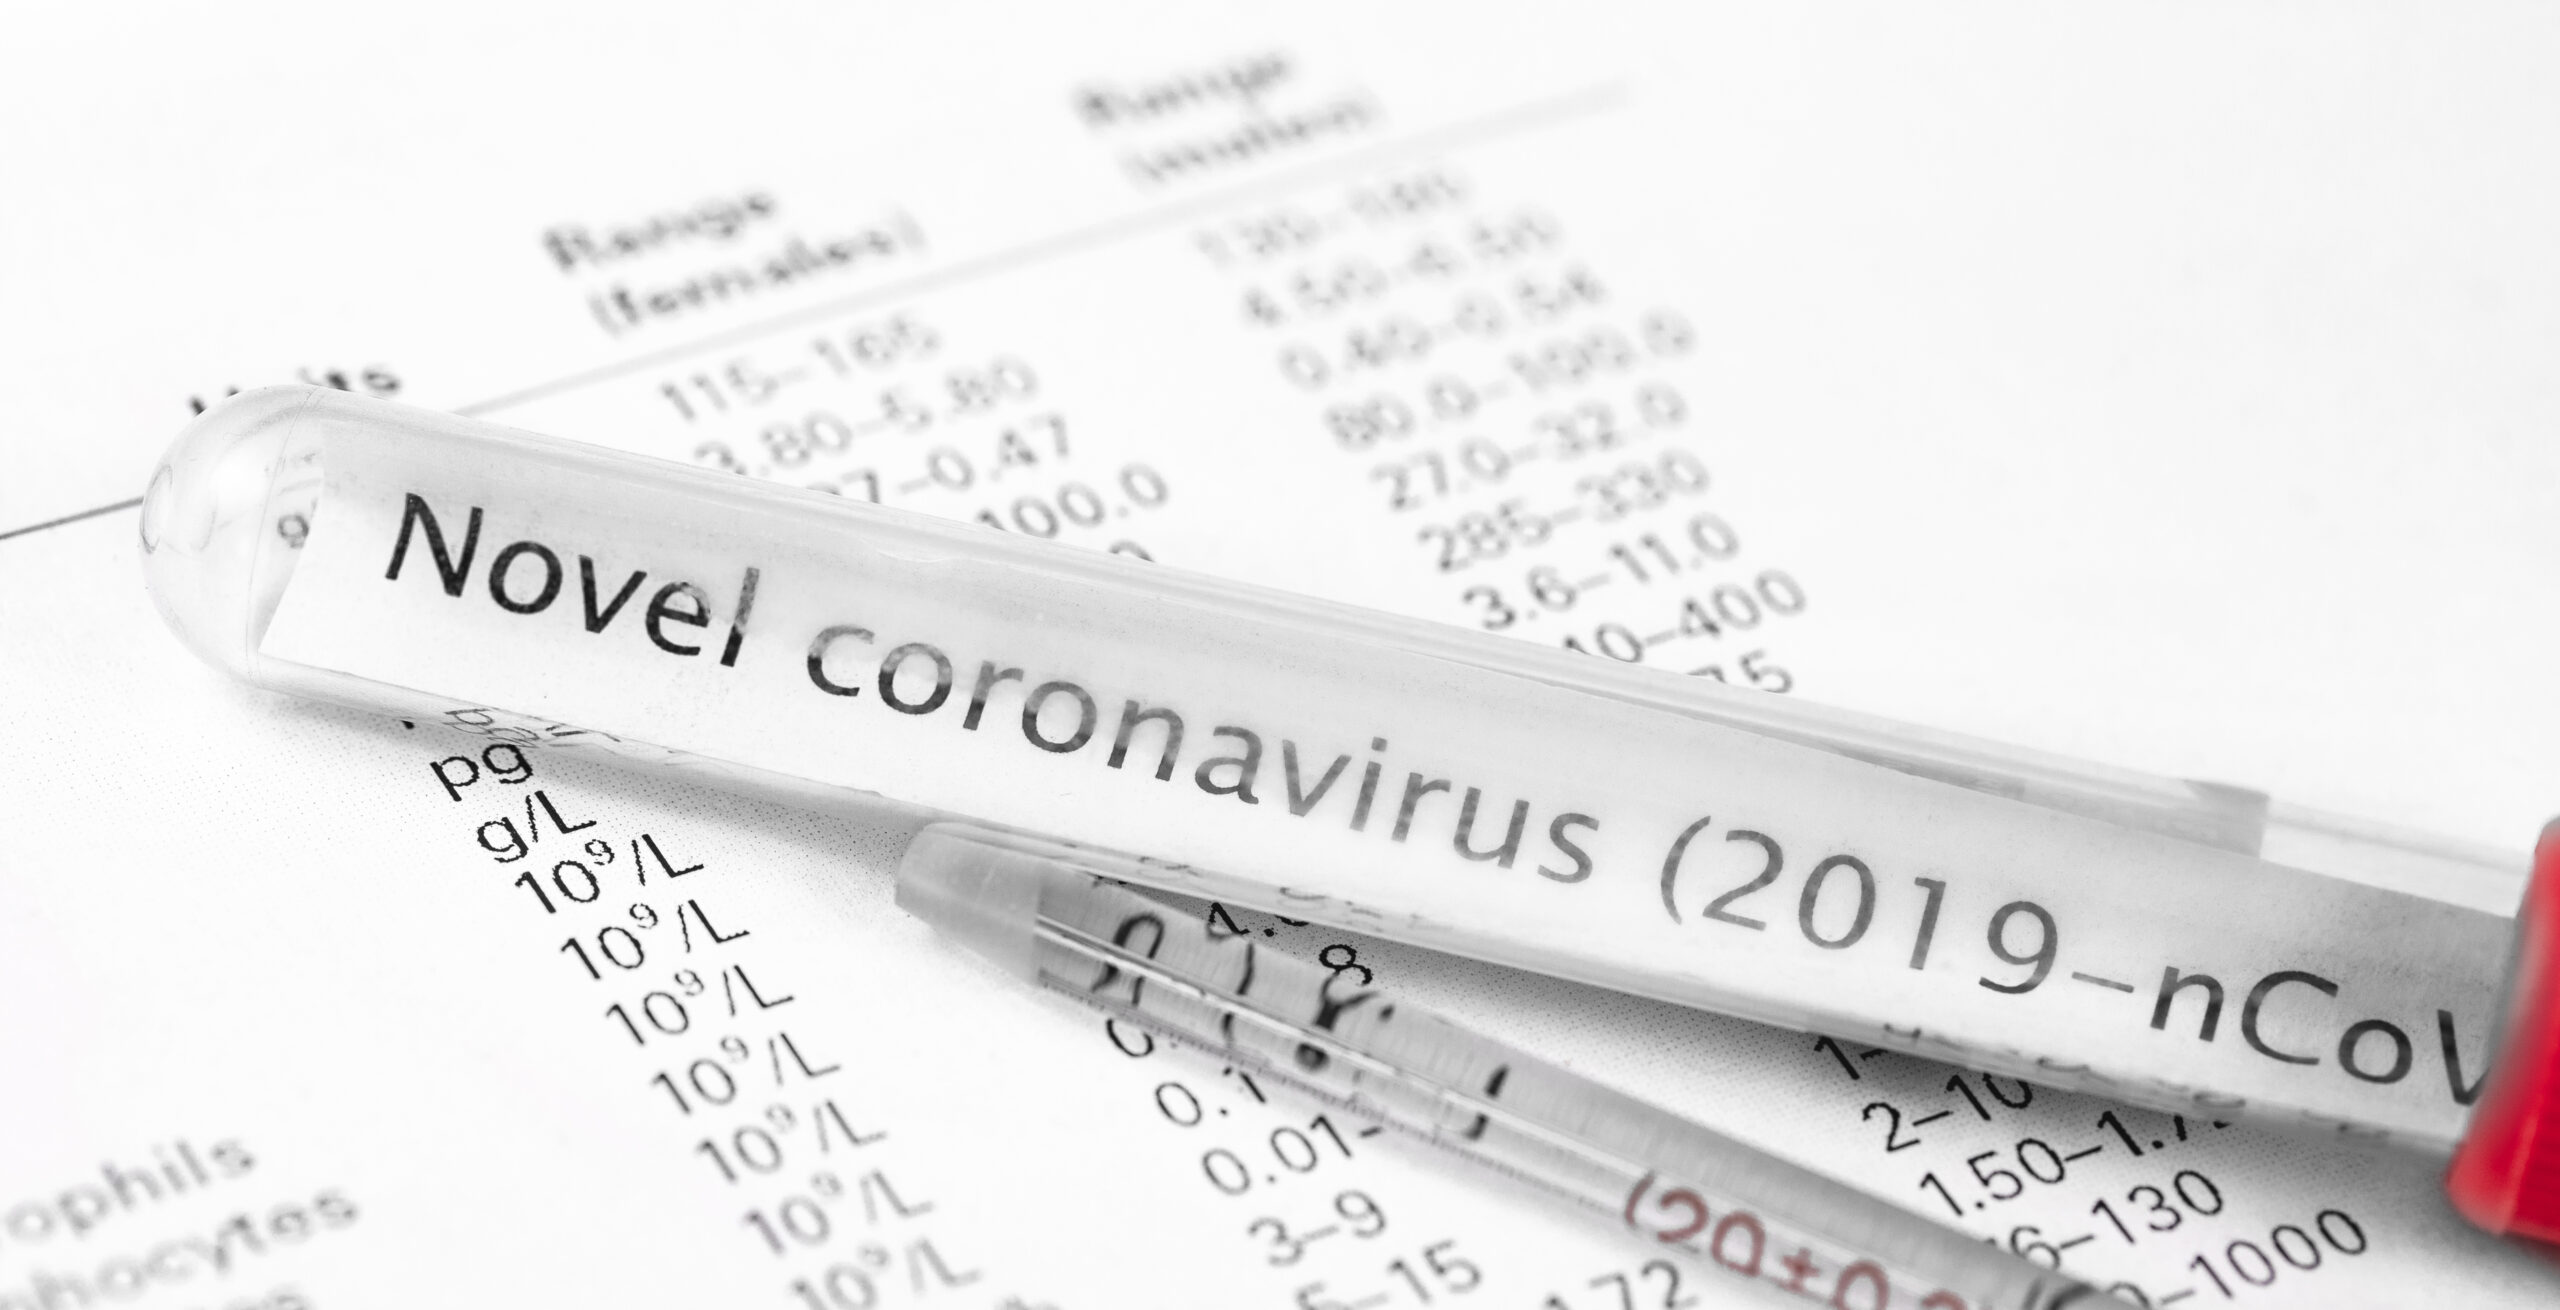 coronavirus, novel coronavirus, 2019 n-cov, wuhan coronavirus, what is the coronavirus, what is the 2019 novel coronavirus, can i get the coronavirus